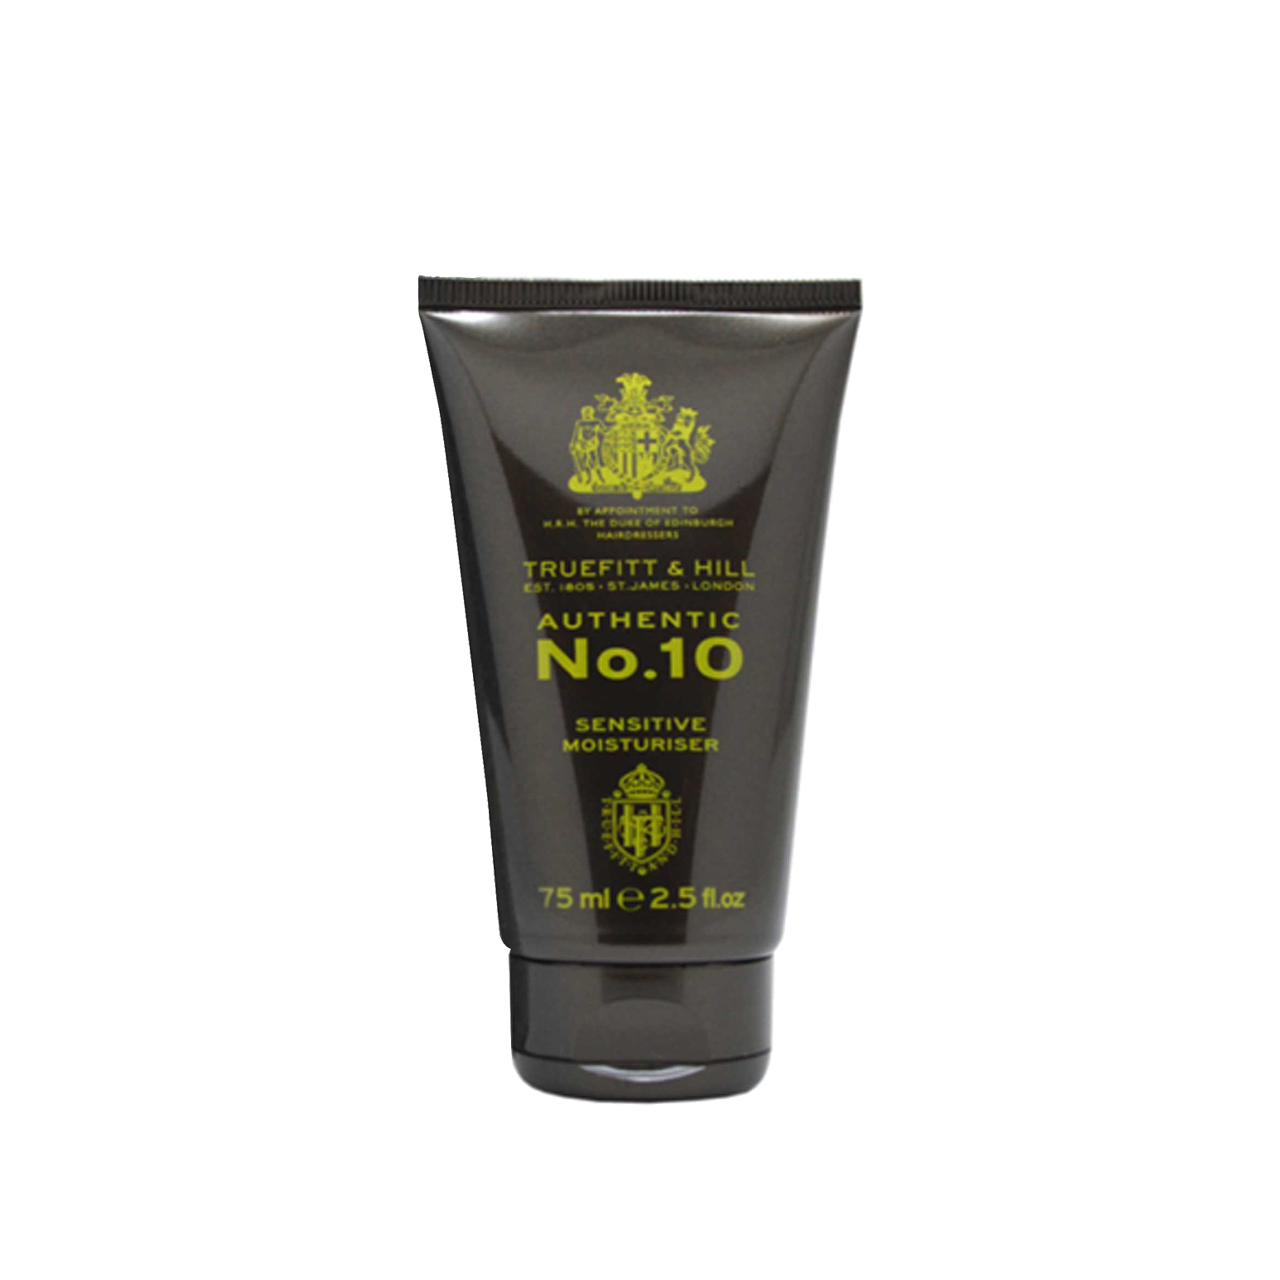 Authentic N°10 - Sensitive Moisturiser